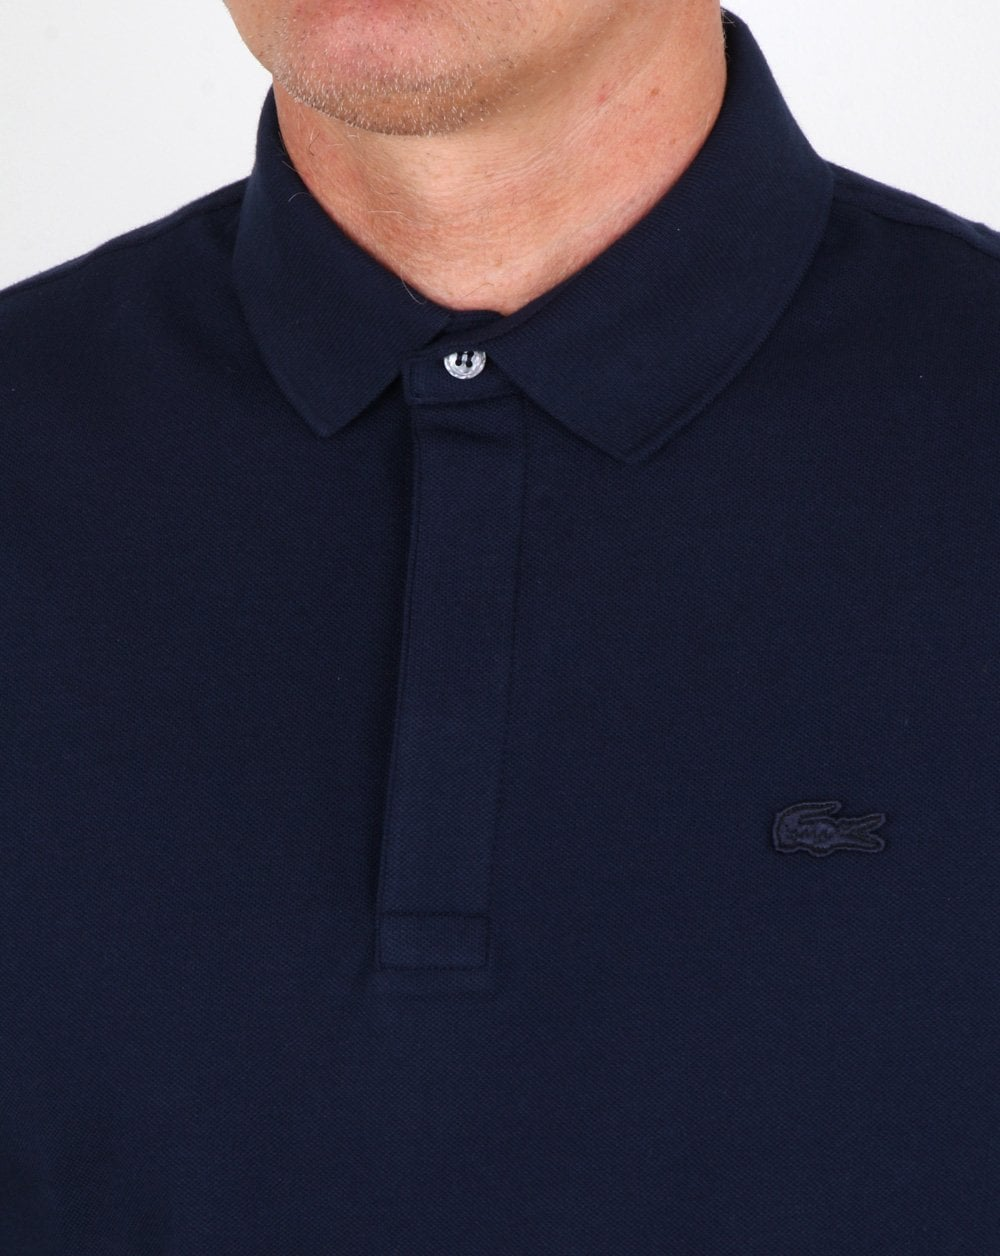 e46a5623 Lacoste Long Sleeve Polo Shirt Navy,blue,smart,knitted,cotton,mens